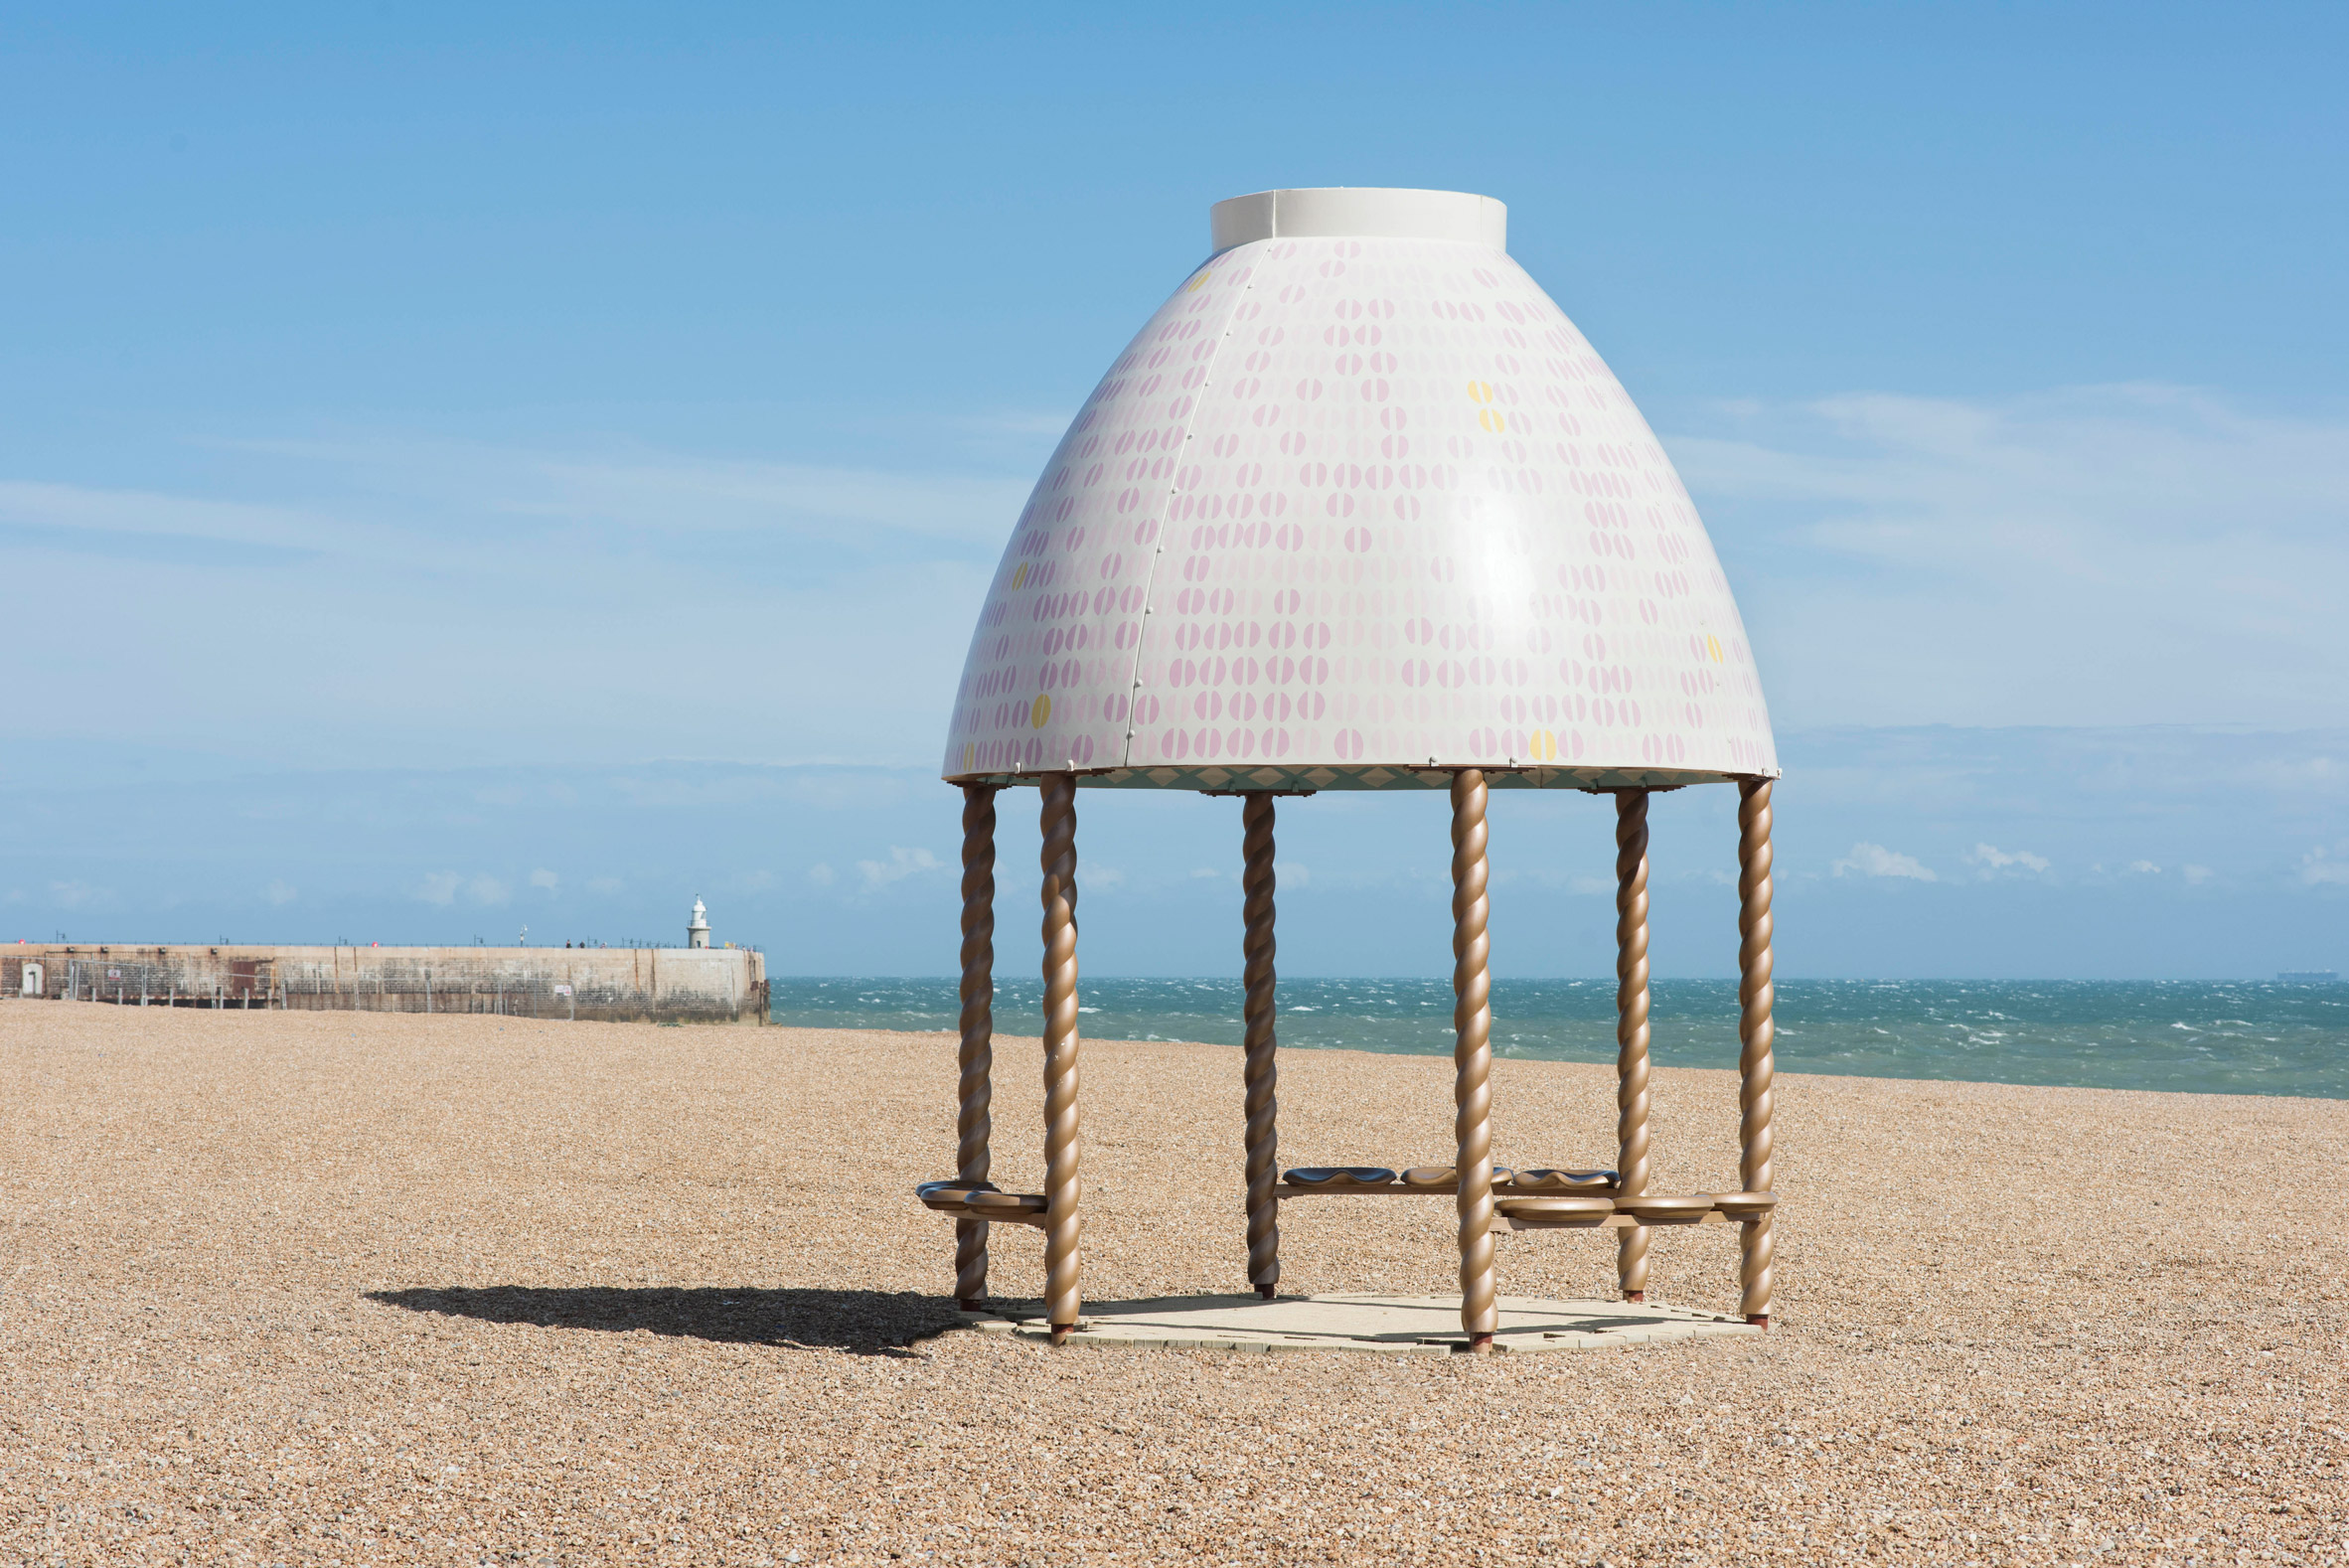 Jelly Mould Pavilion by Lubaina Himid